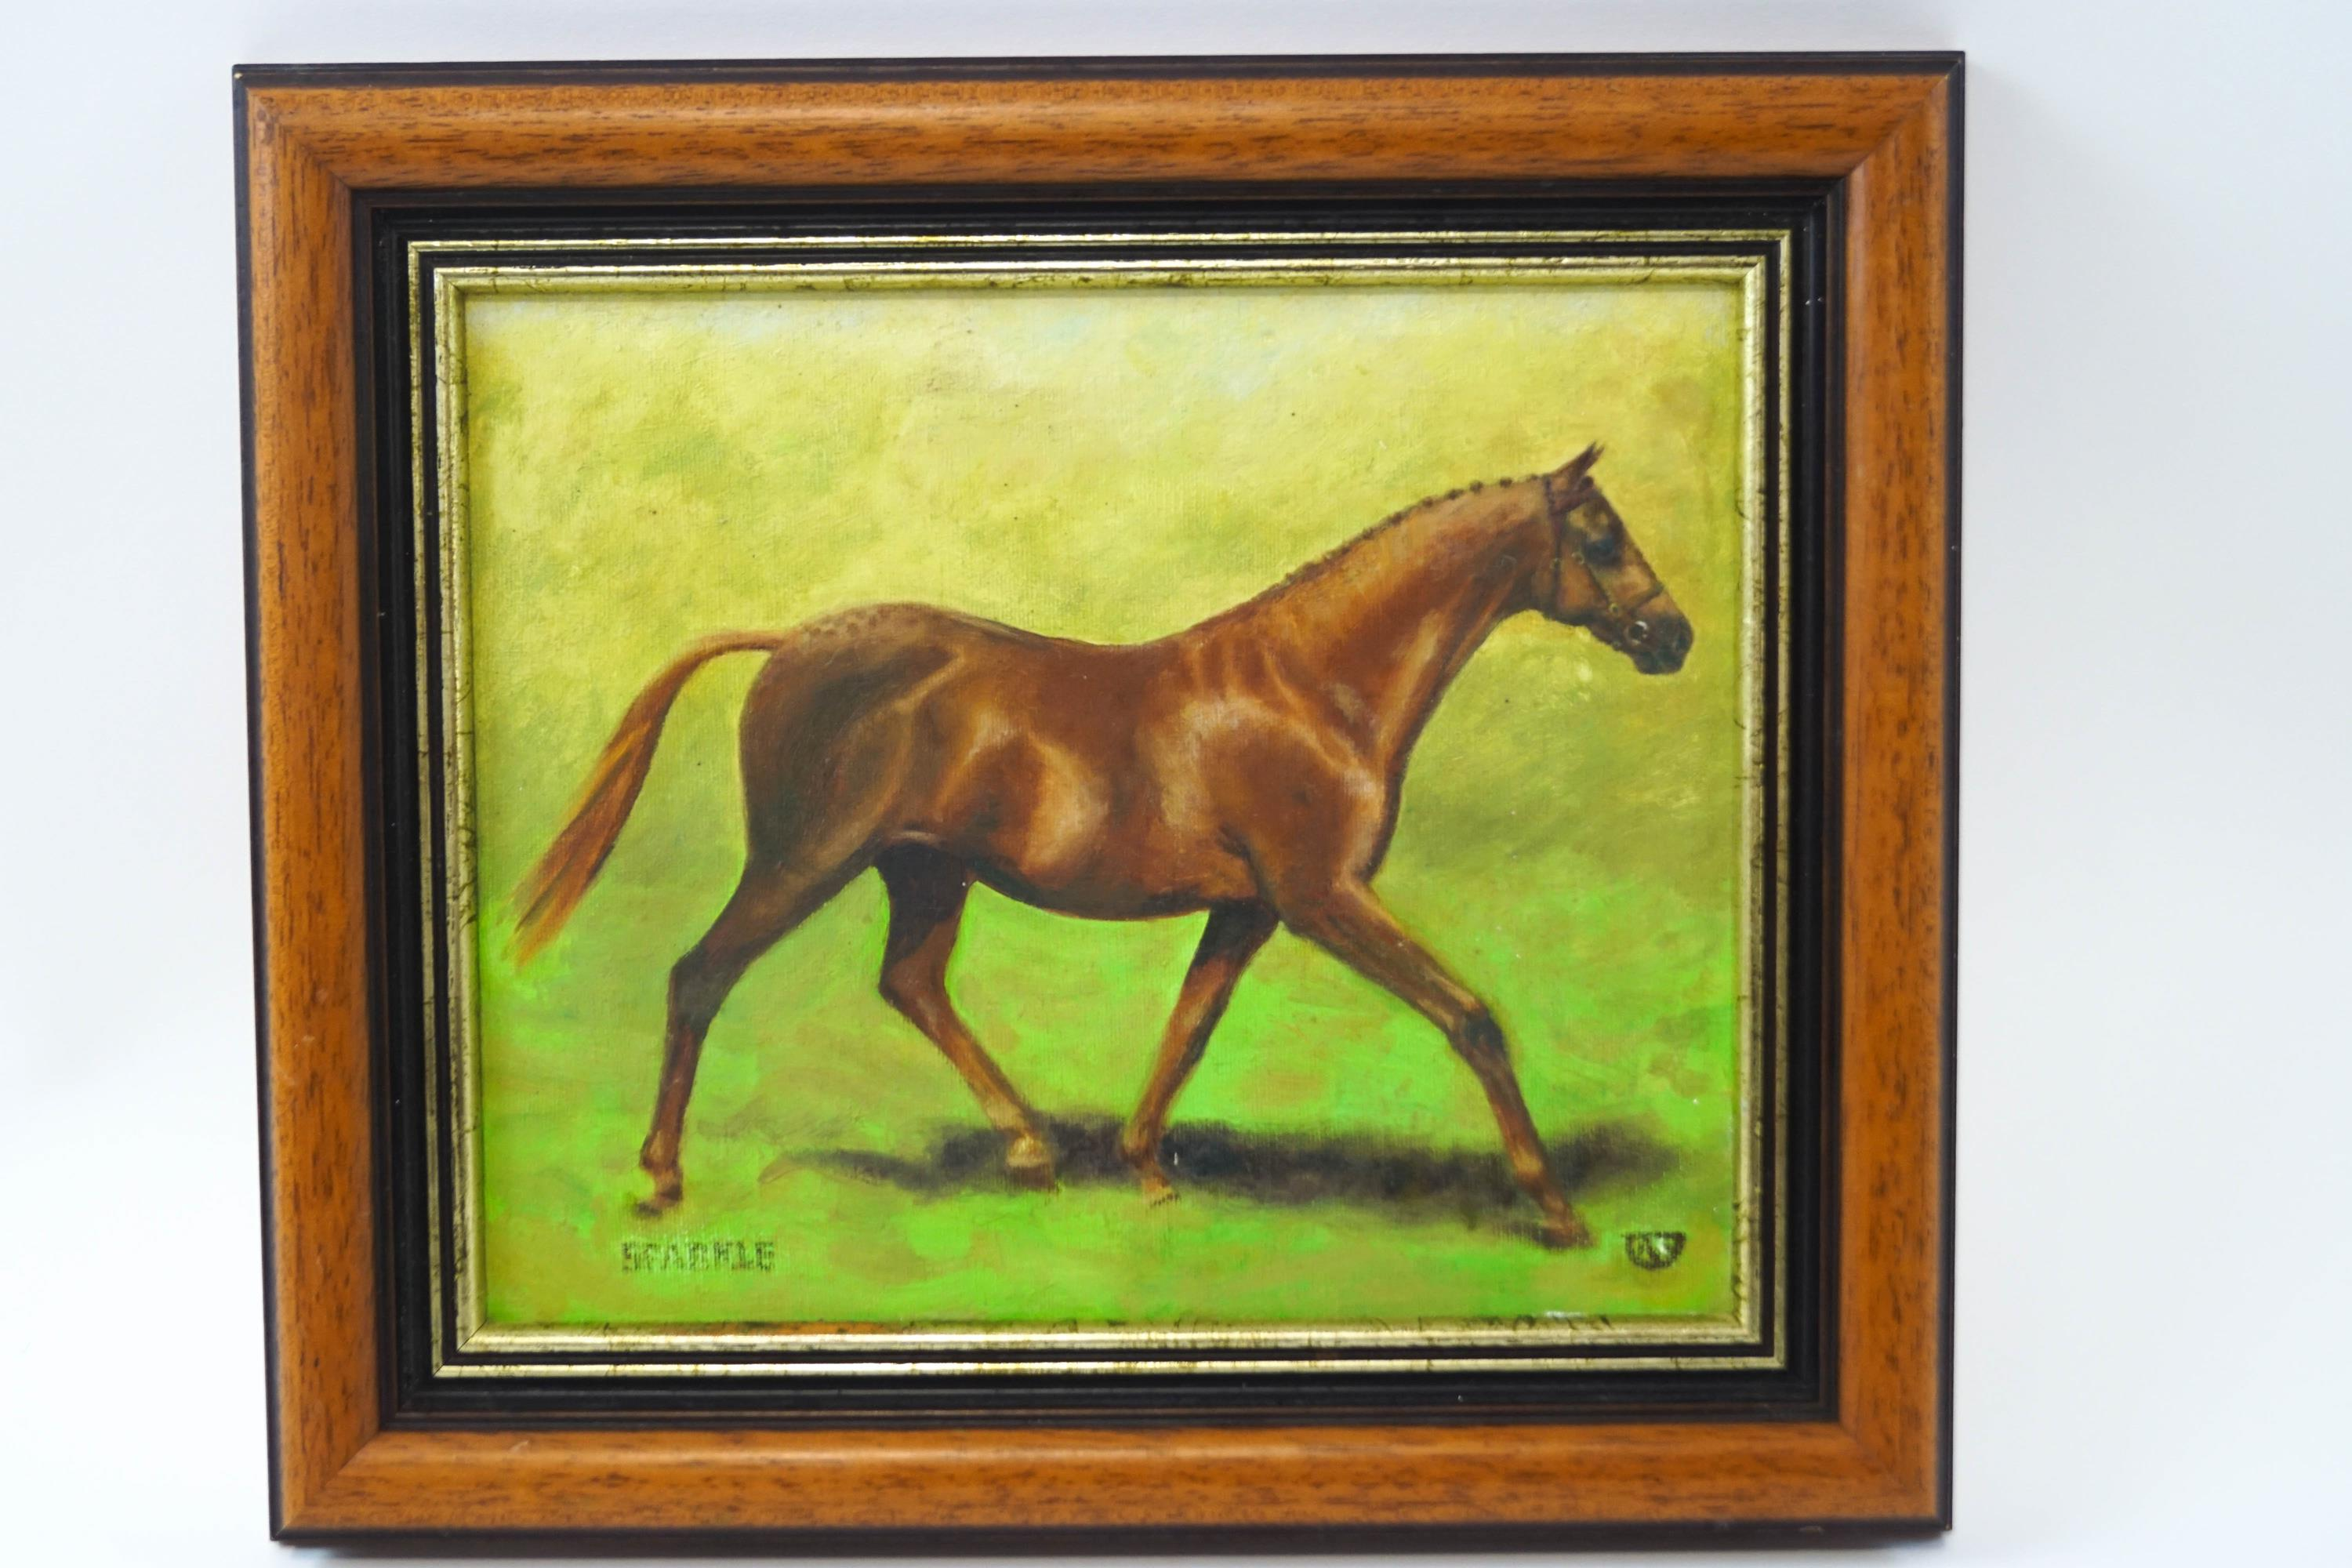 Lot 12 - English School, 20th century Racehorse Oil on canvas Indistinct monogram 23.